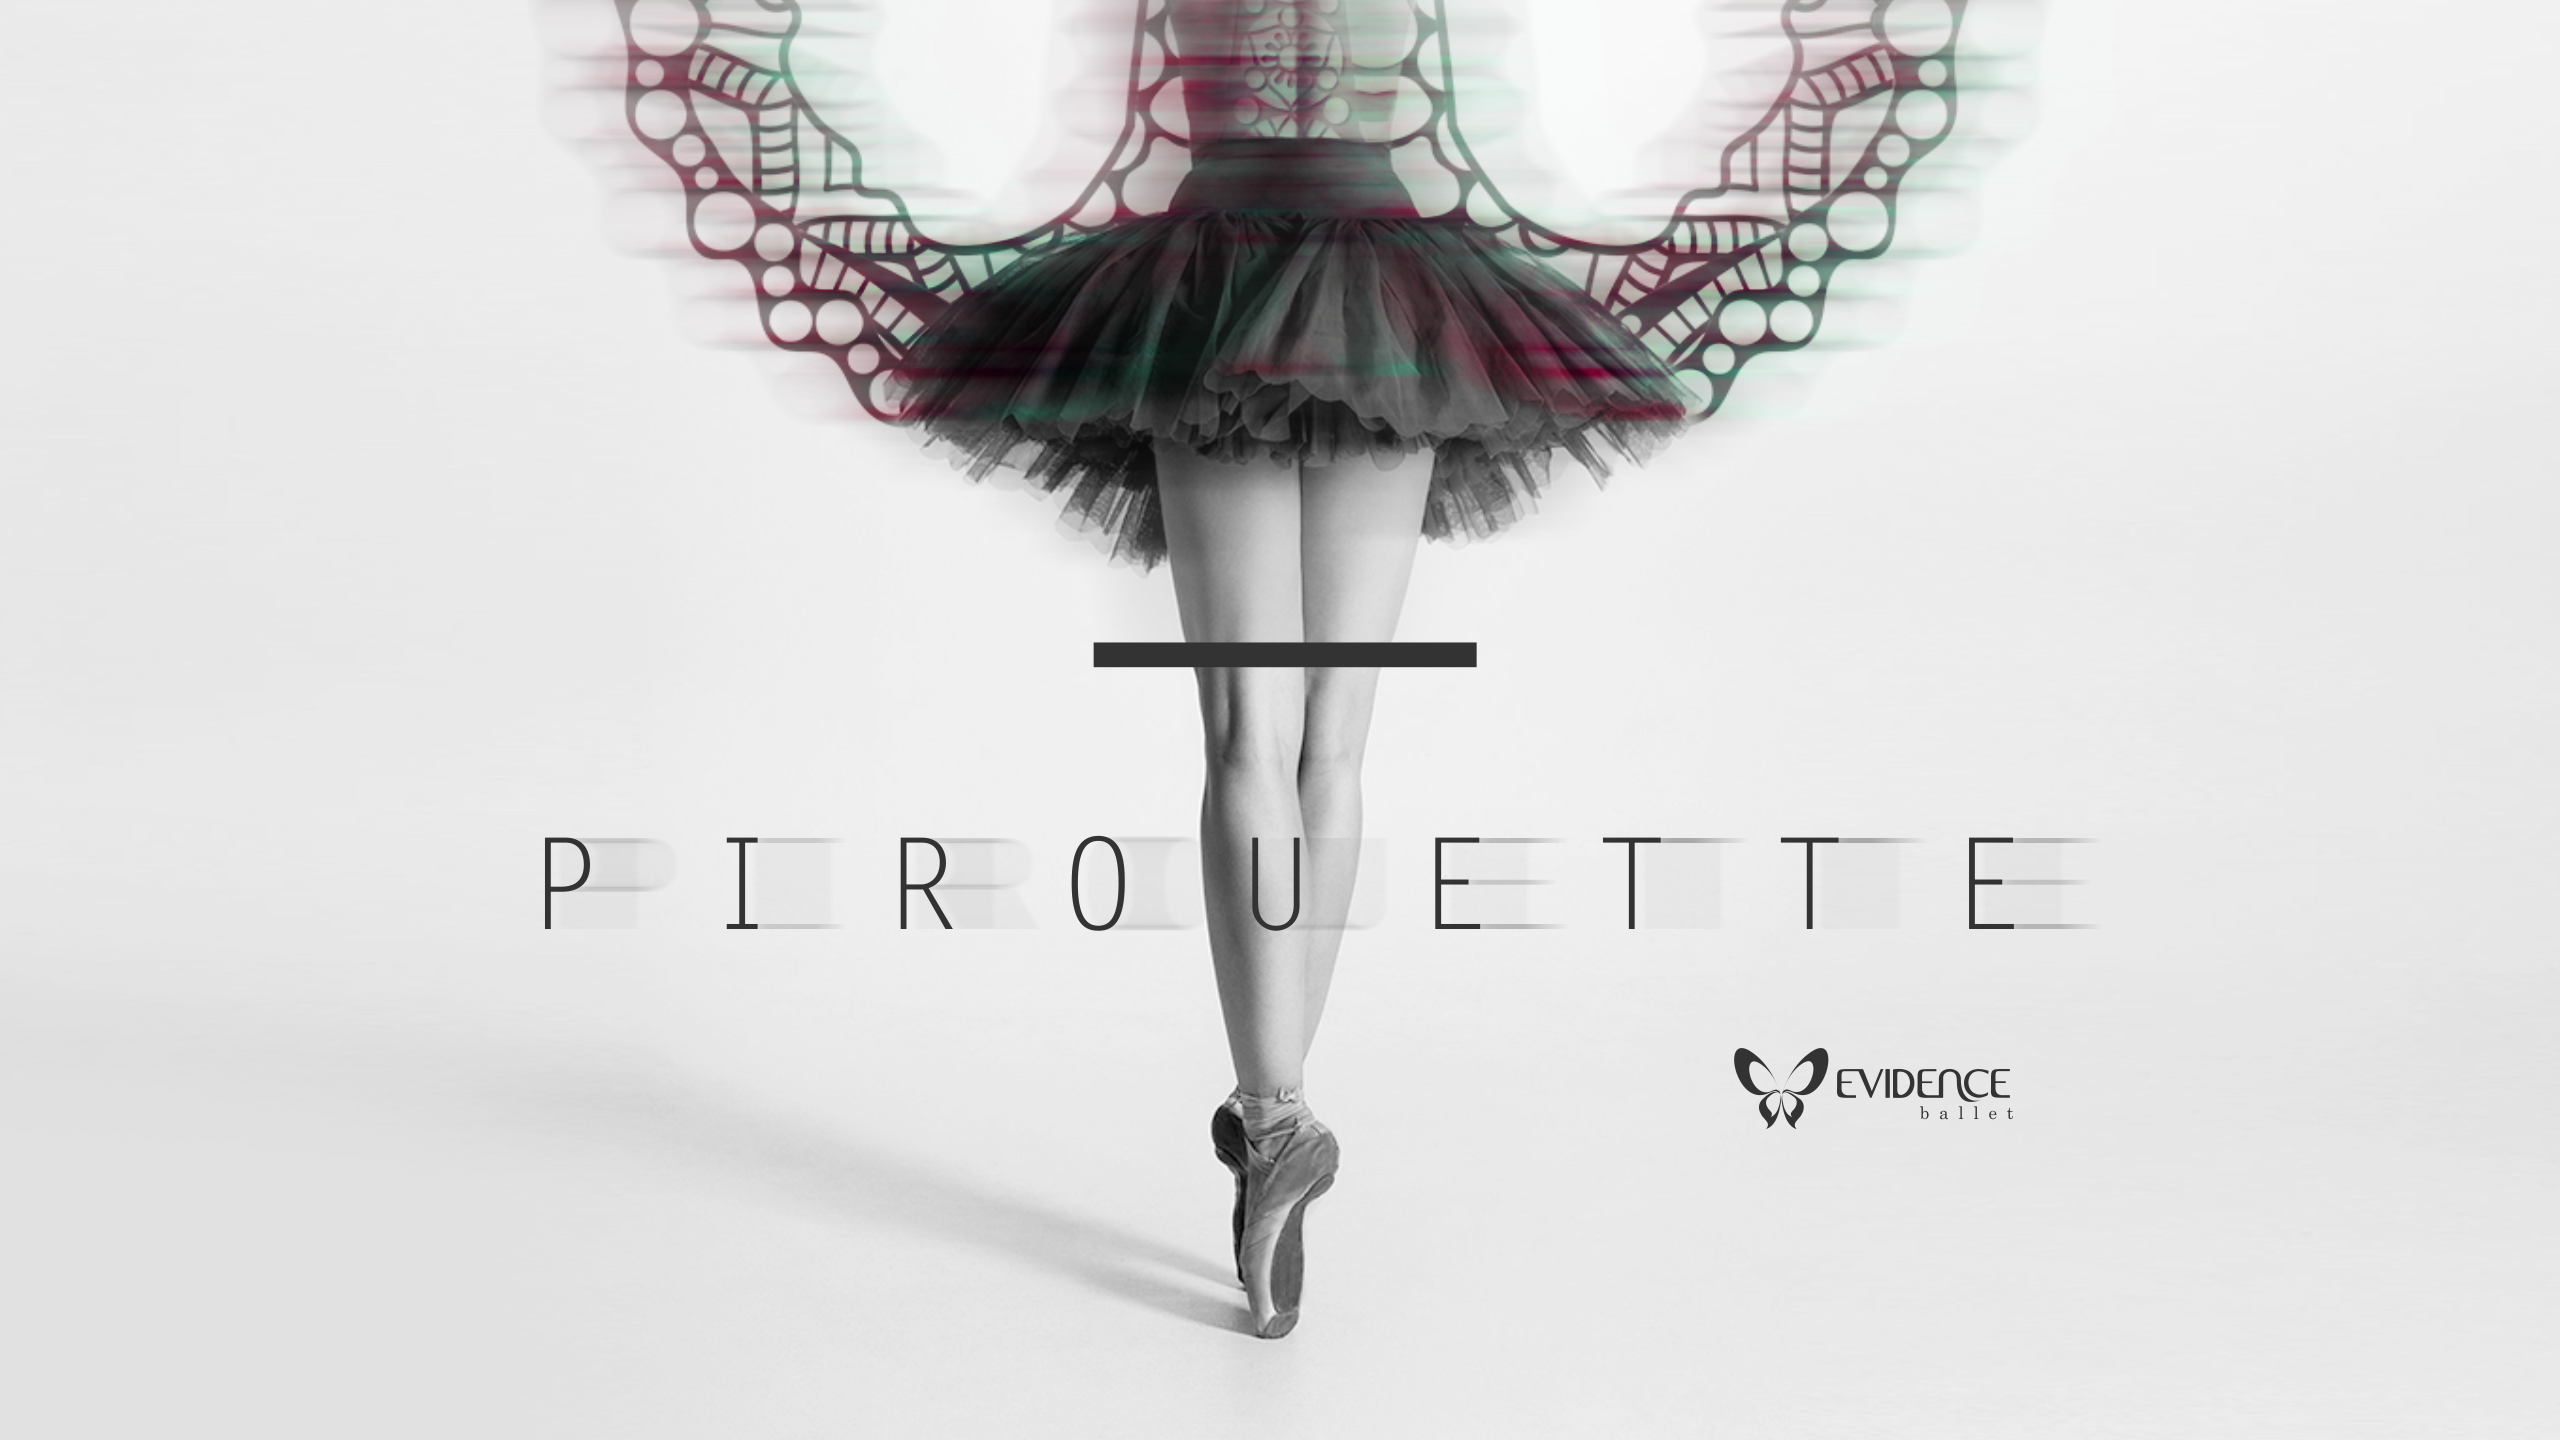 Evidence - Pirouette - Conceito 05